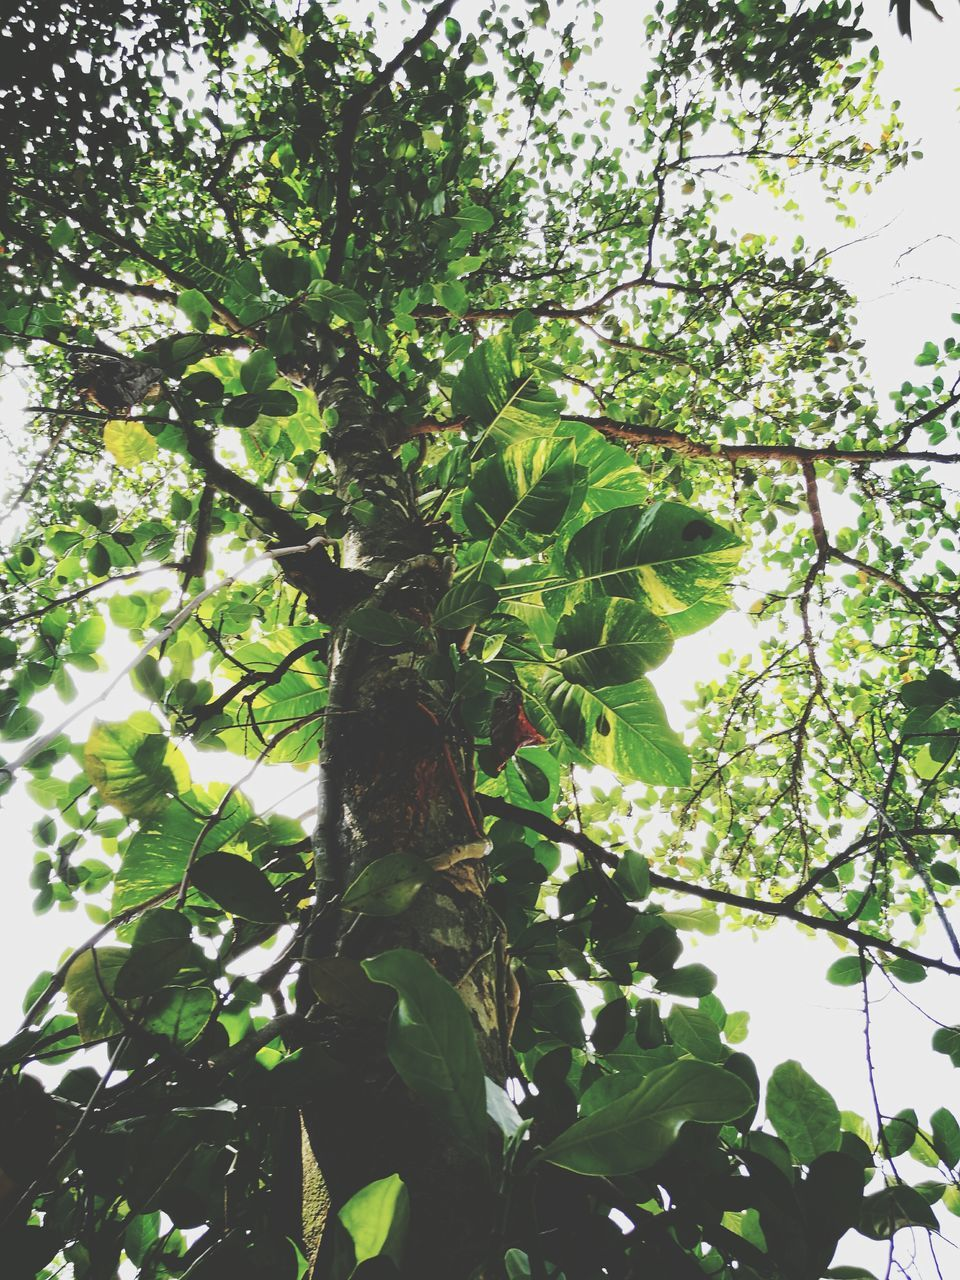 tree, growth, low angle view, nature, branch, leaf, no people, green color, day, plant, beauty in nature, fruit, outdoors, hanging, freshness, close-up